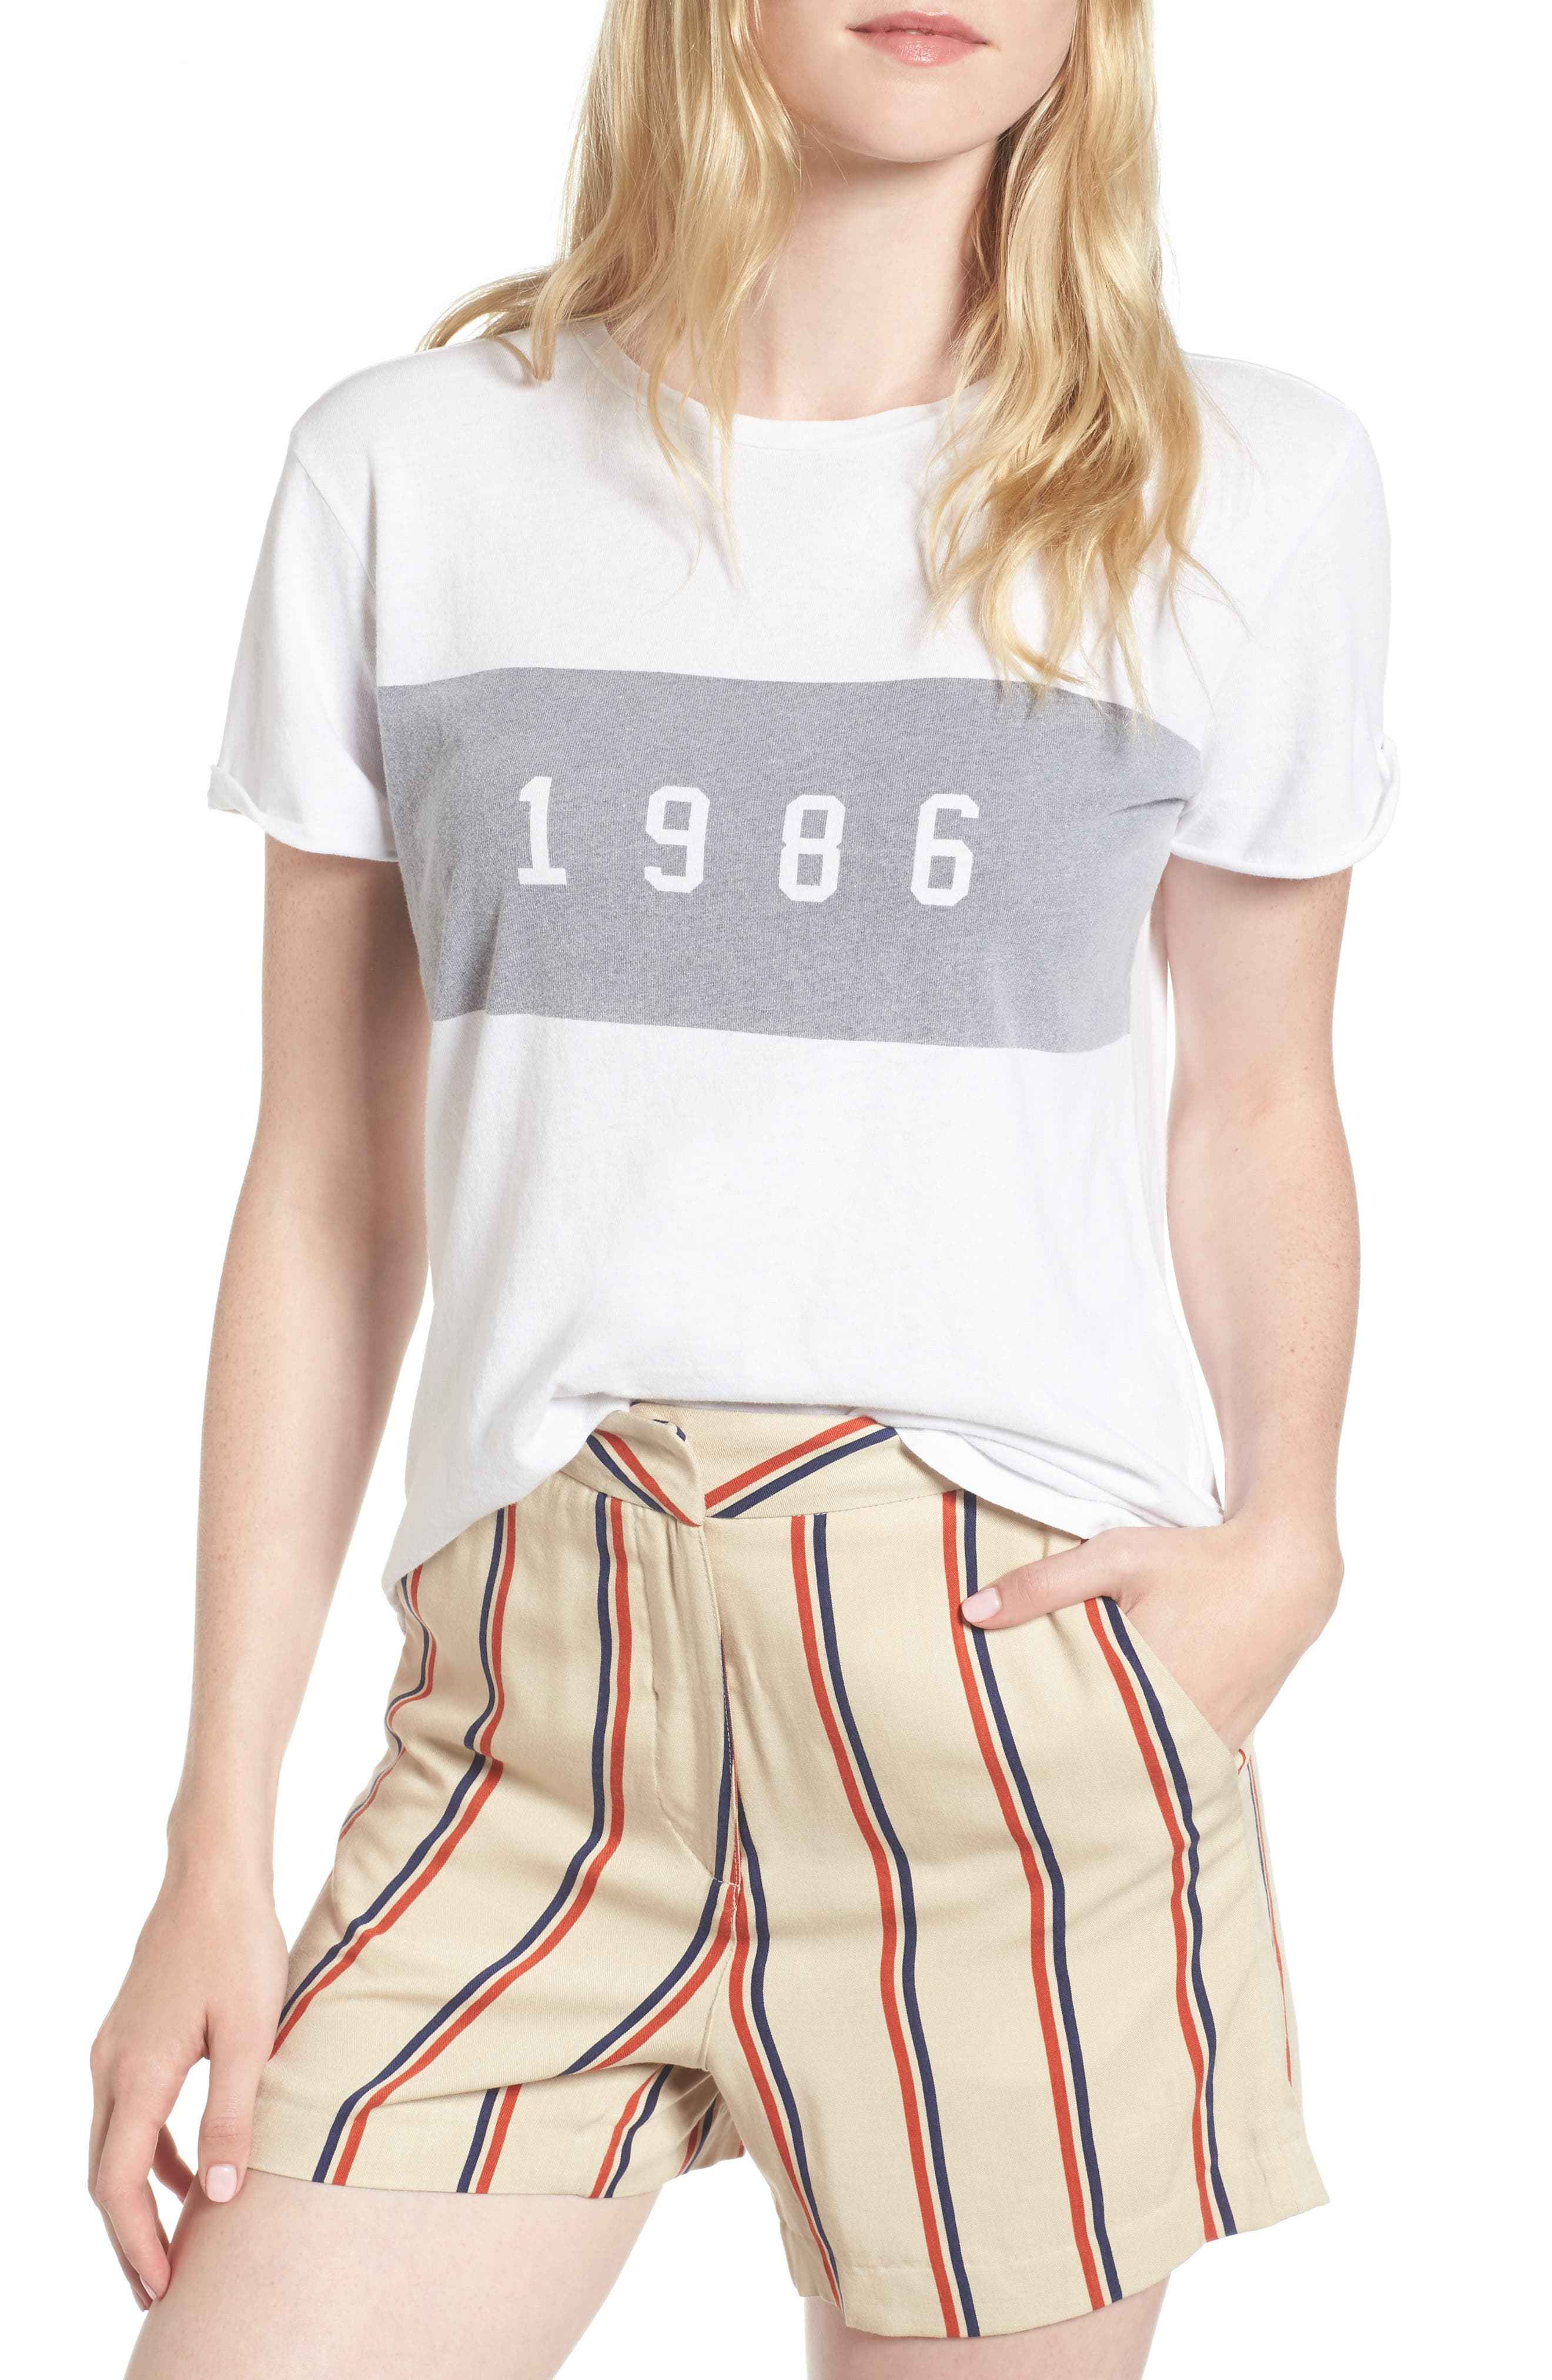 1986 Tee,                         Main,                         color, White